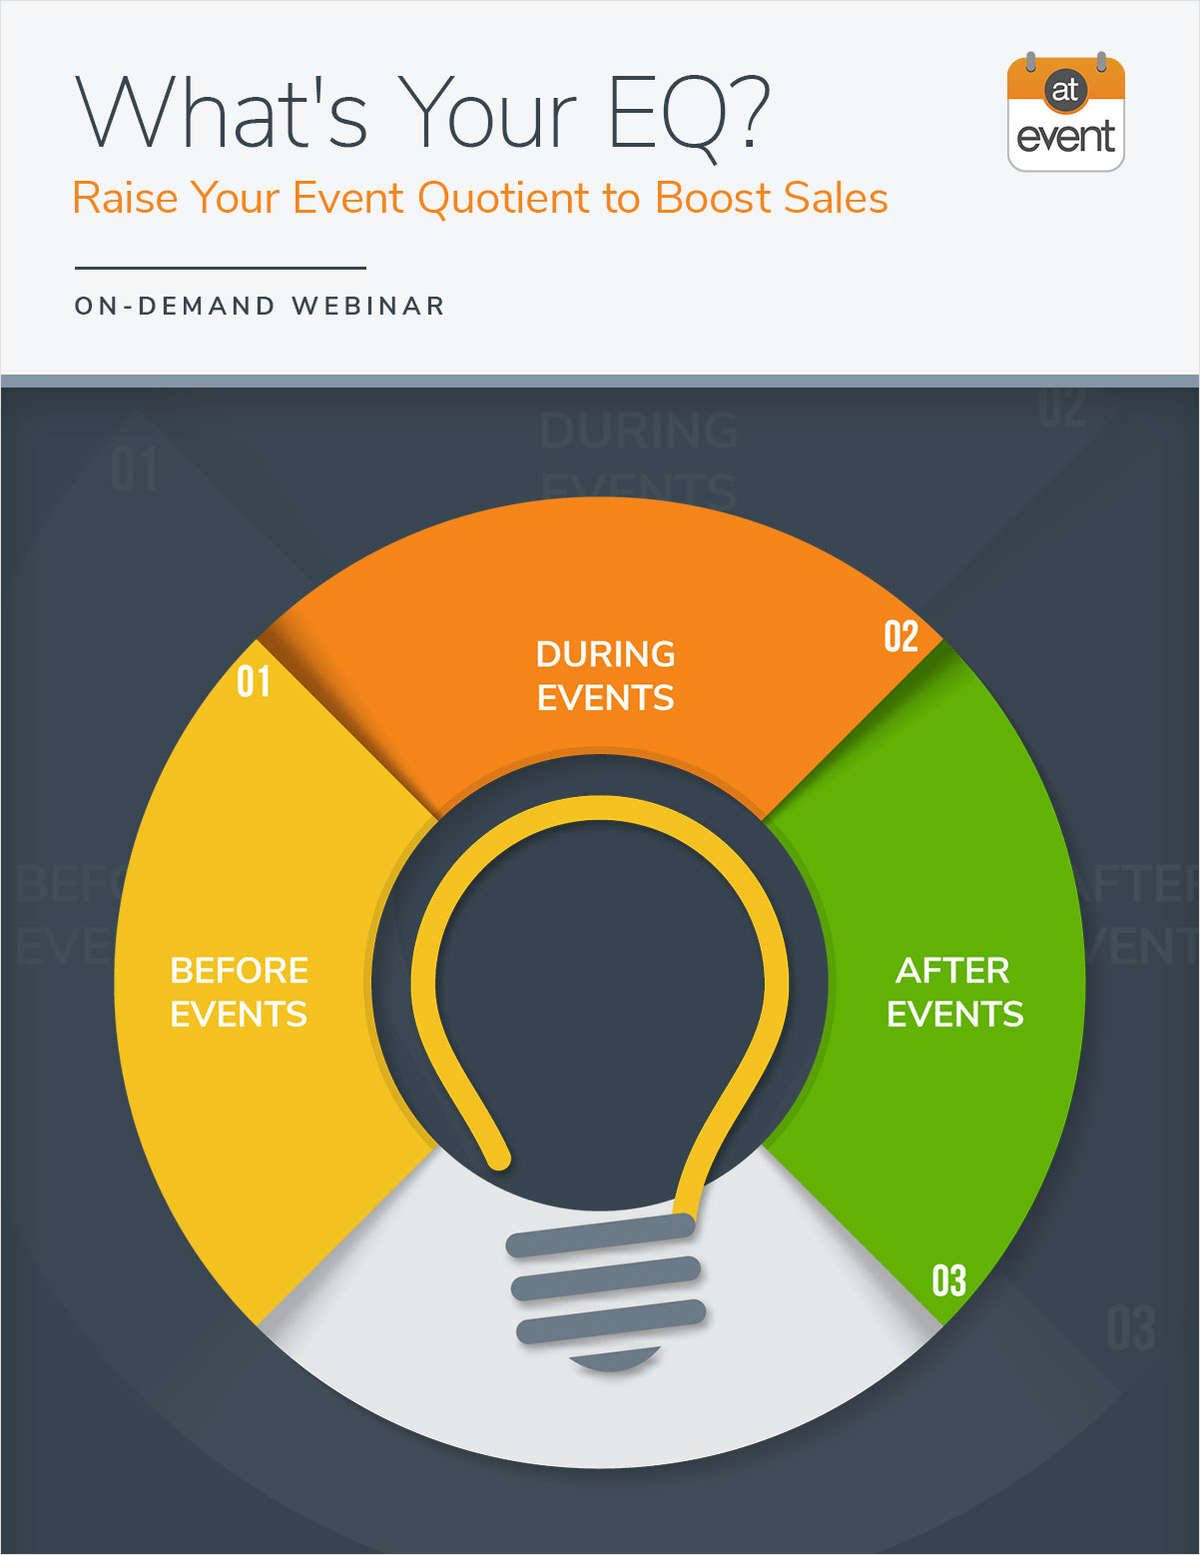 What's Your EQ?: Raise Your Event Quotient to Boost Sales